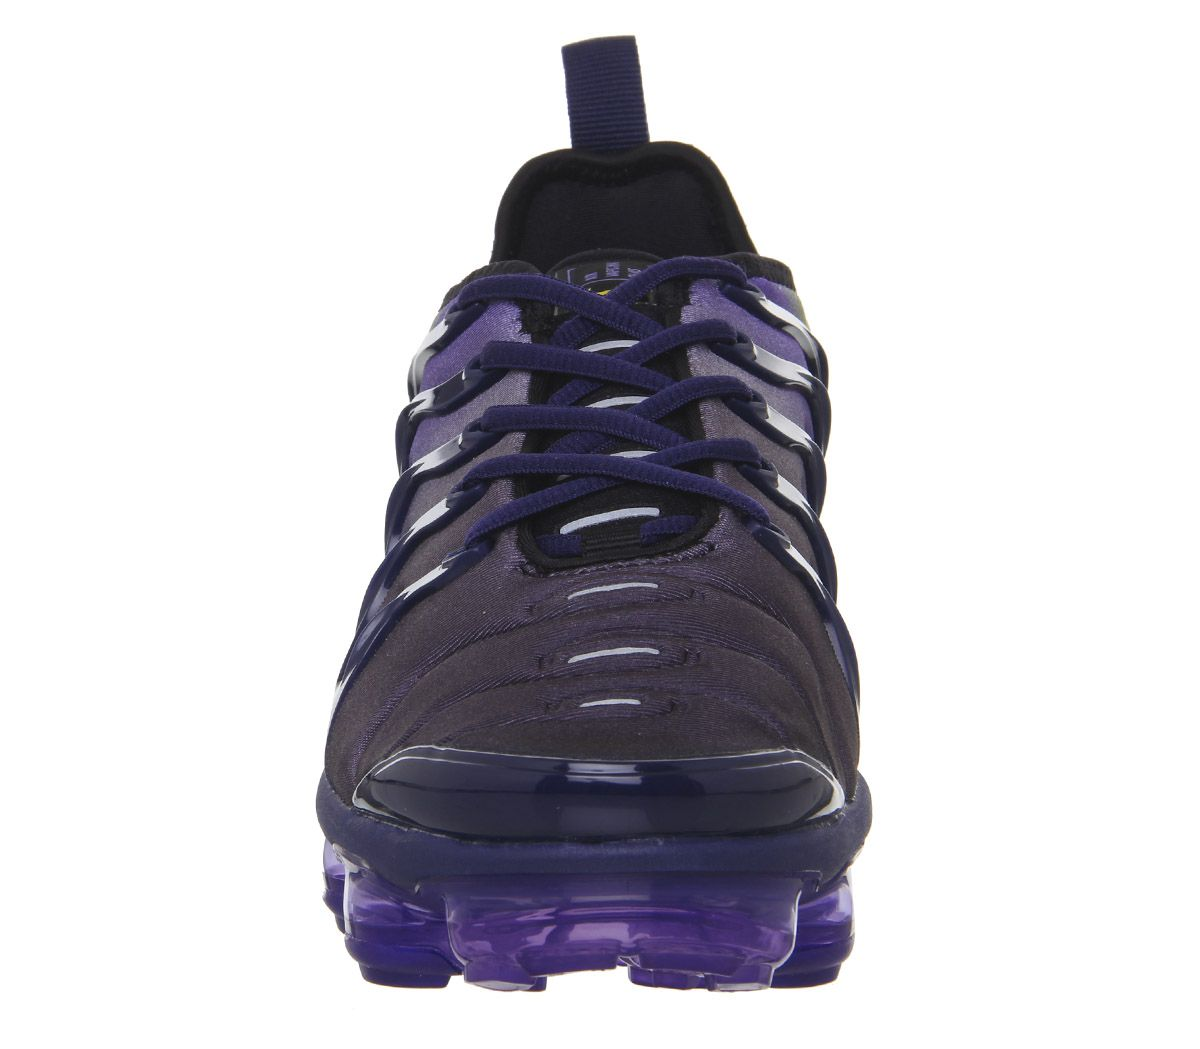 15473ef9d7 Nike Vapormax Air Vapormax Plus Trainers Persian Violet Black ...